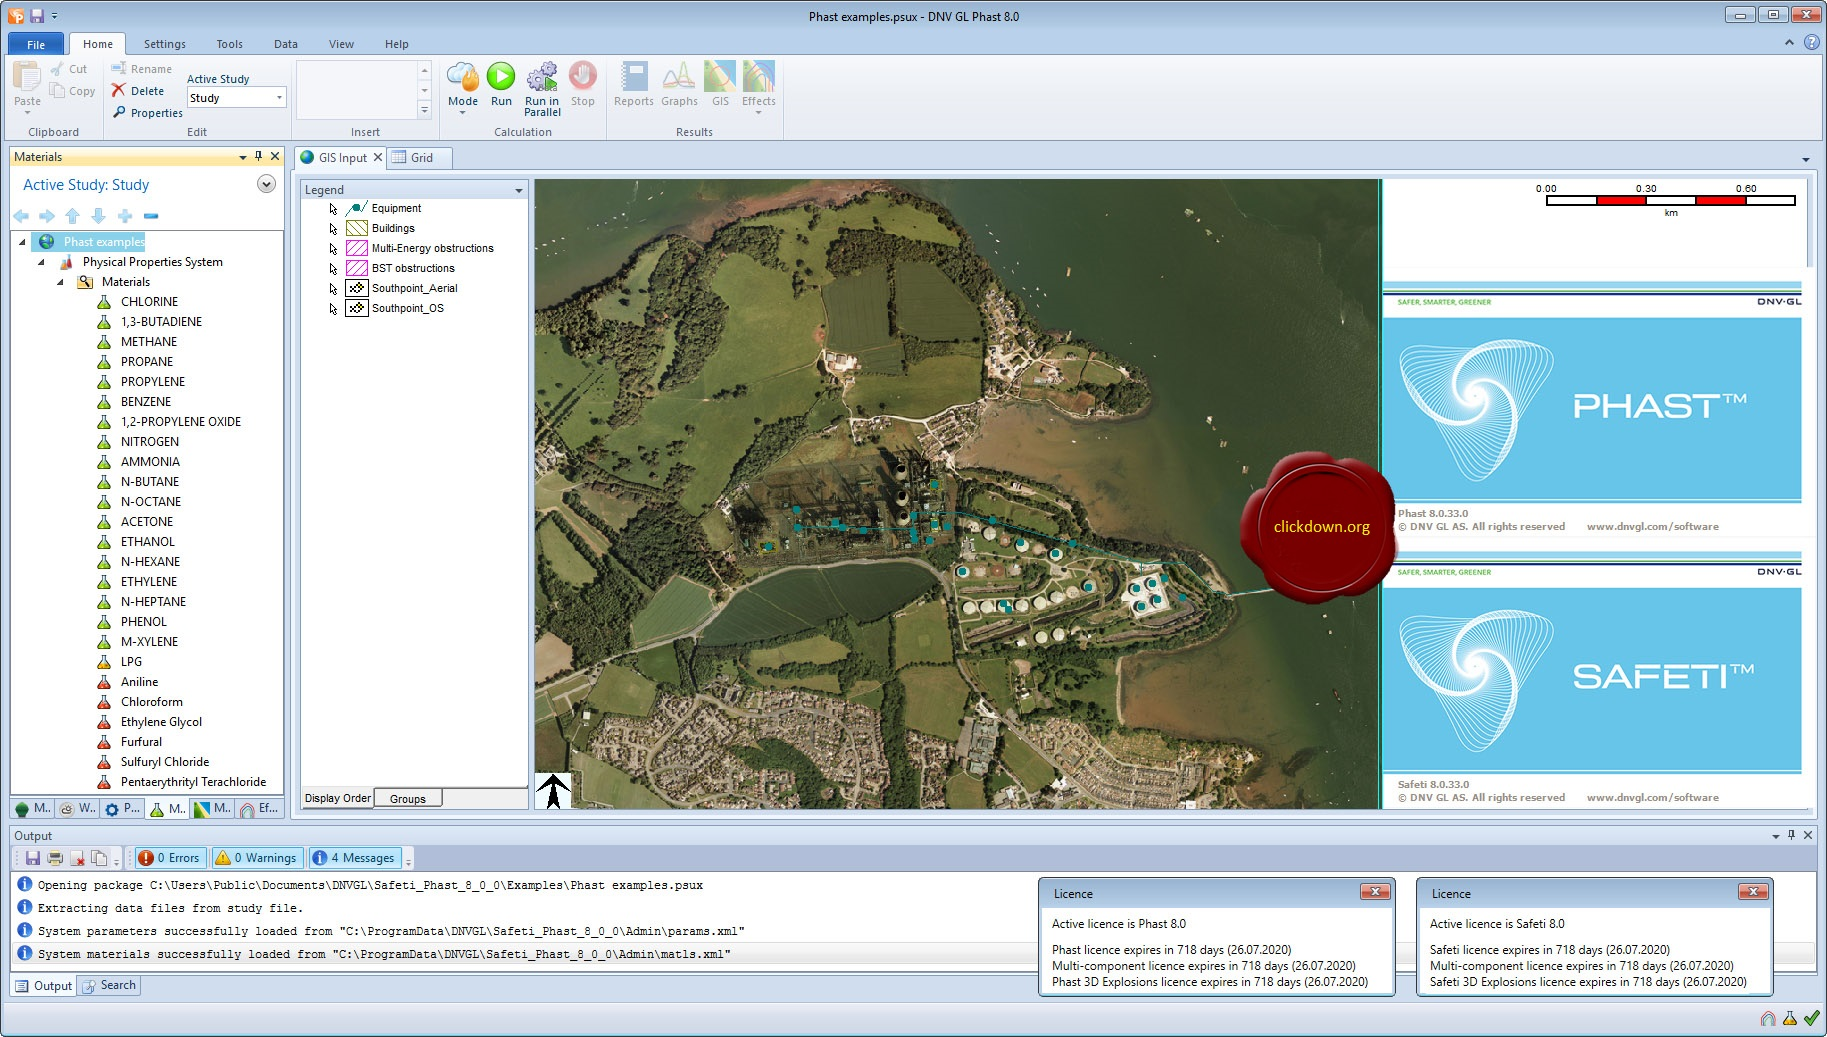 Working with DNV GL AS Phast Safety 8.0.33.0 full license